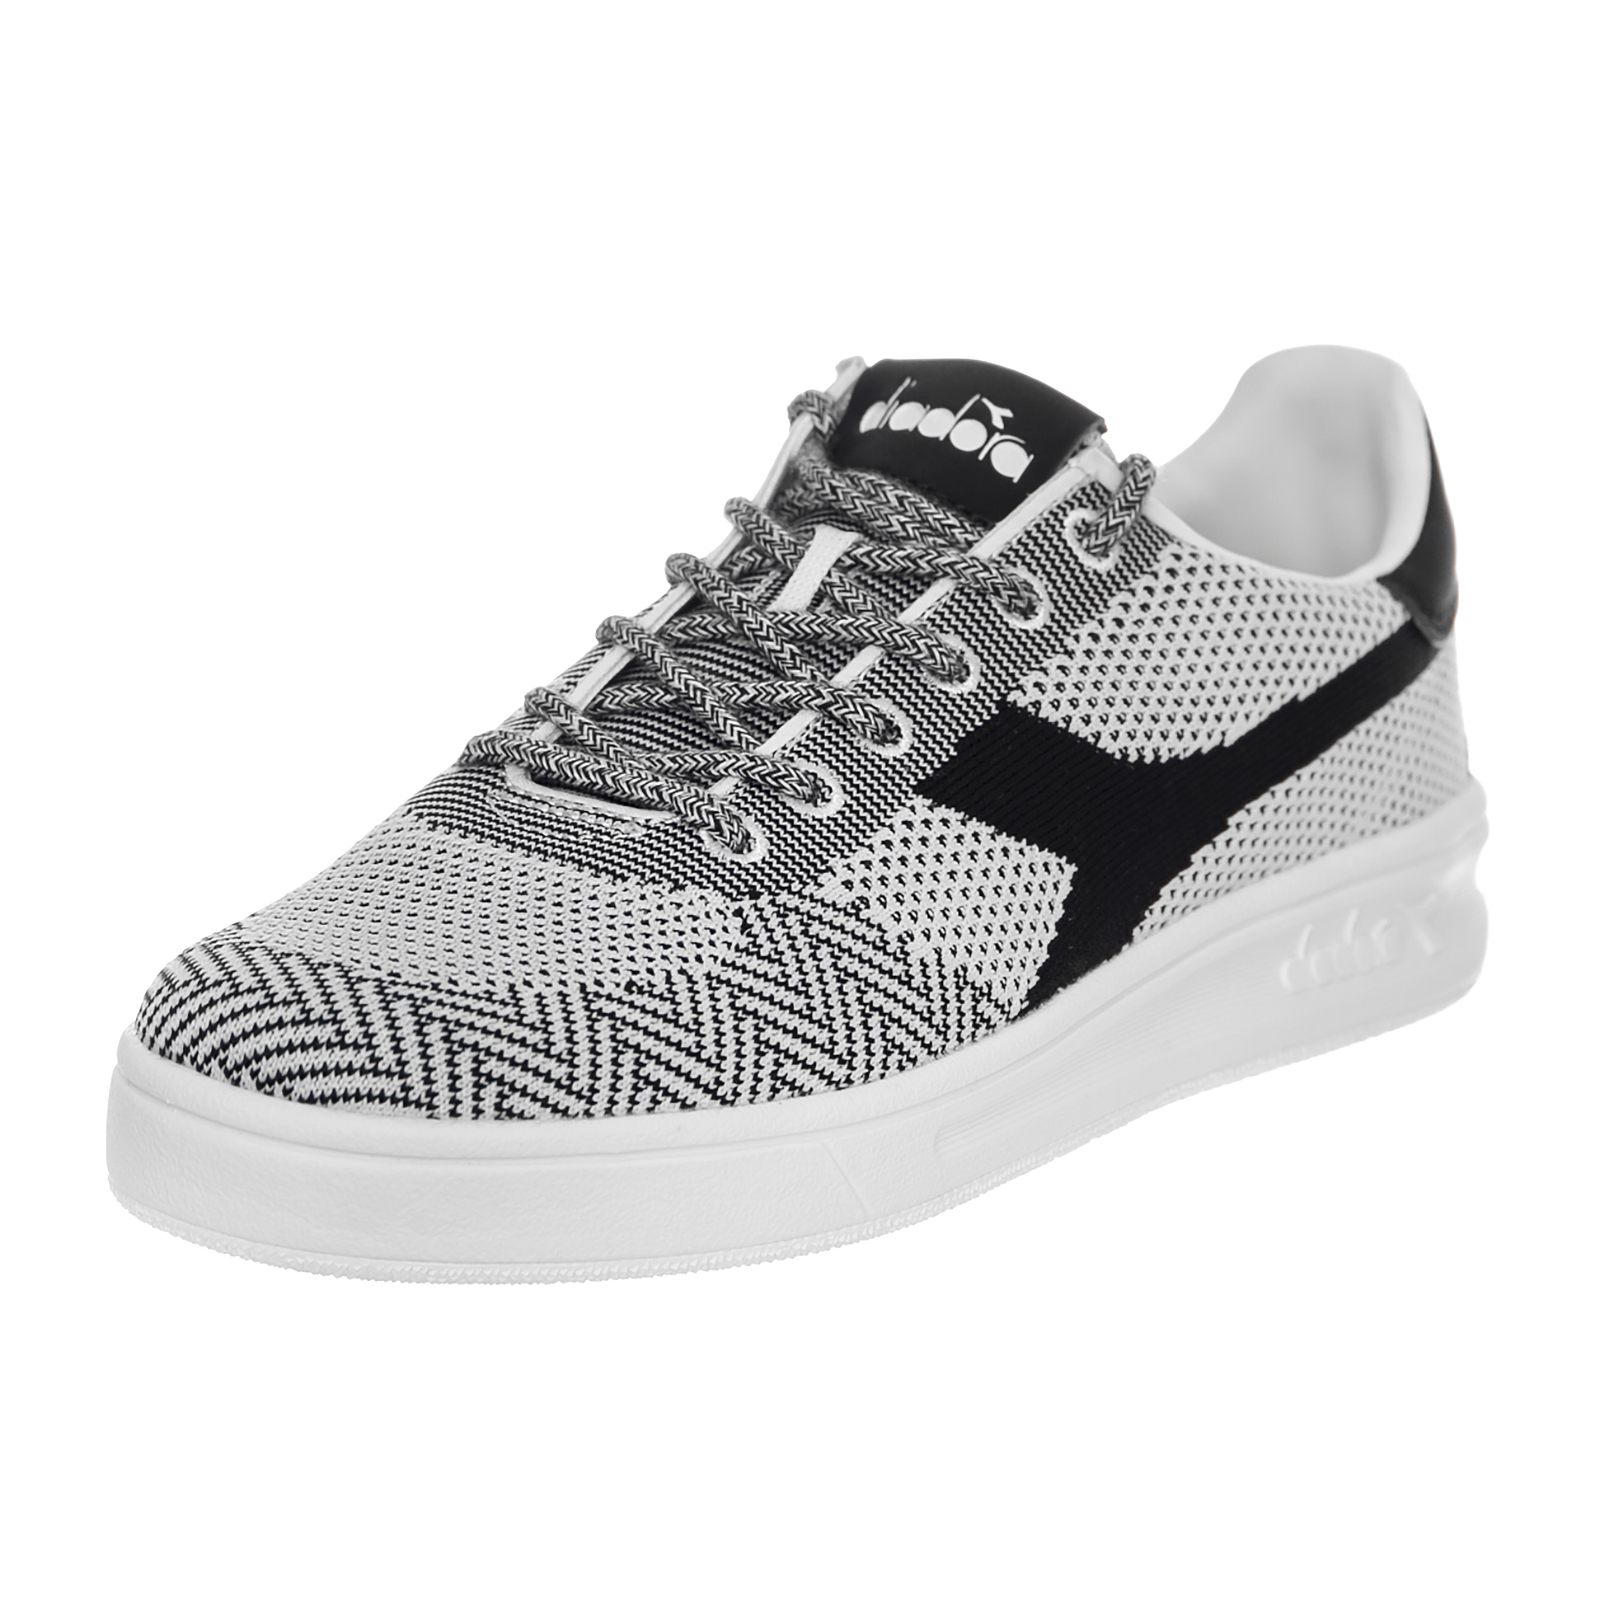 Diadora Sneakers B.Elite Weave White   Black Bianco  2645c37183b